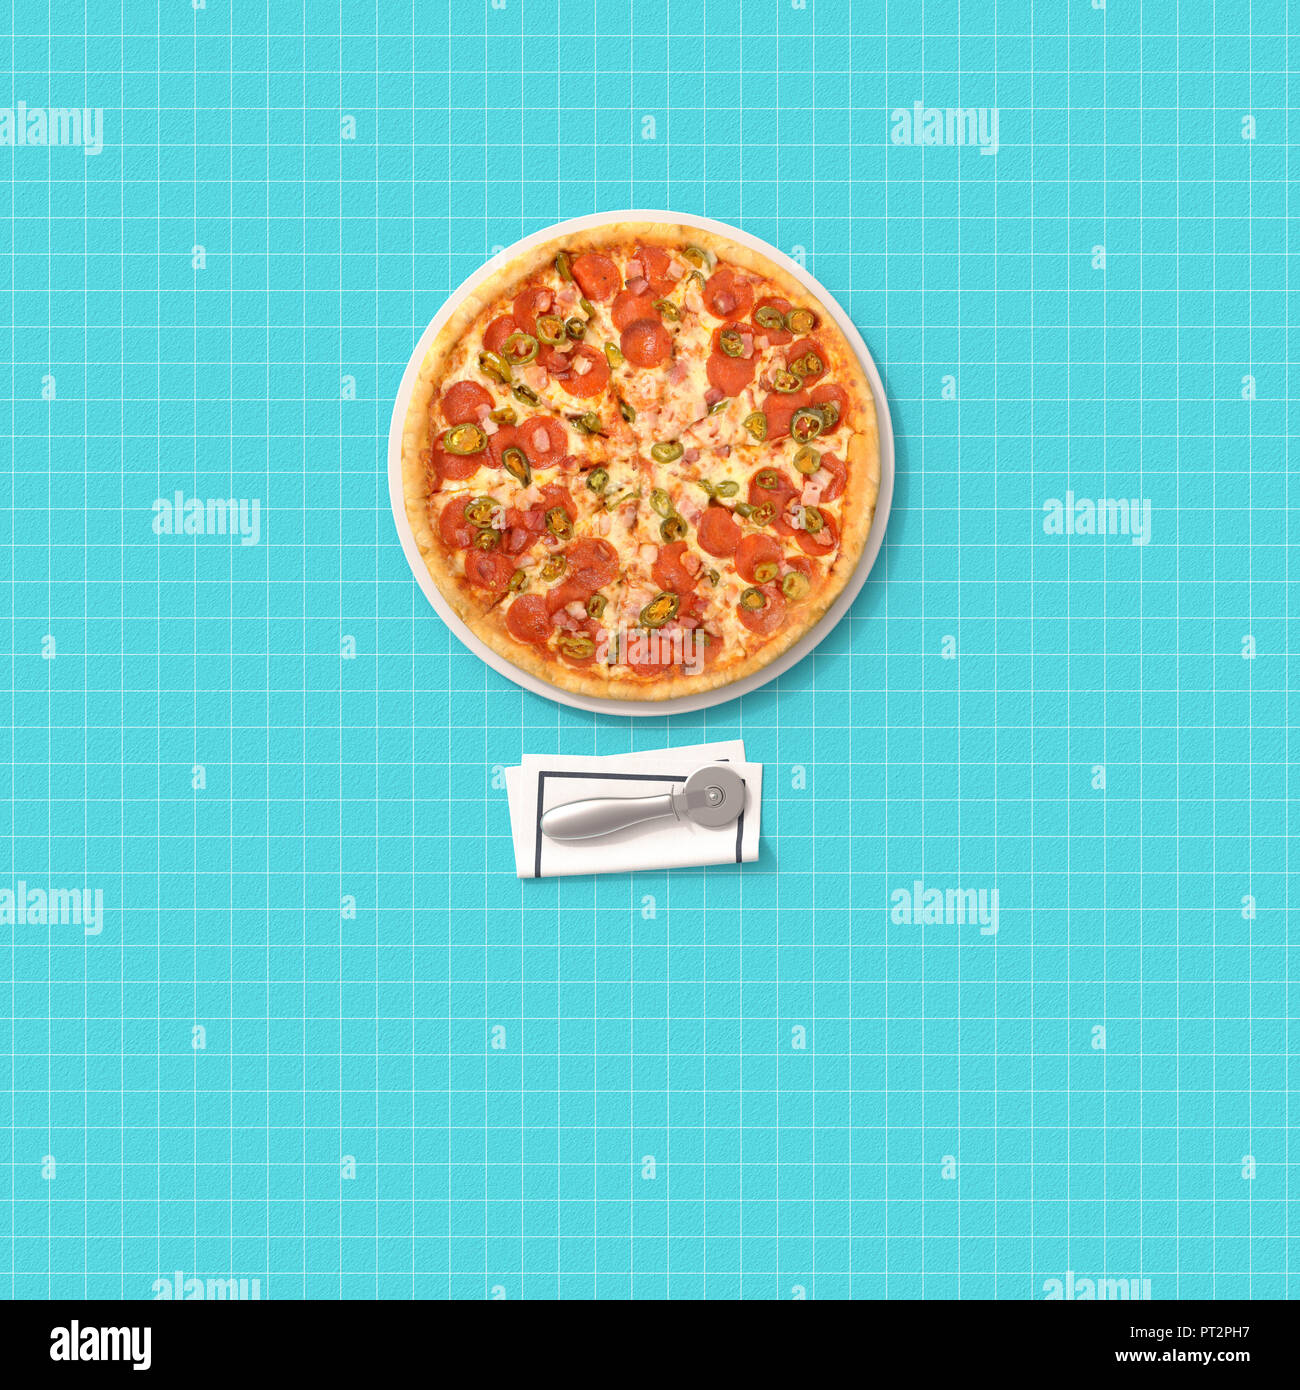 3D rendering, Pizza and cutter on chequered table cloth - Stock Image